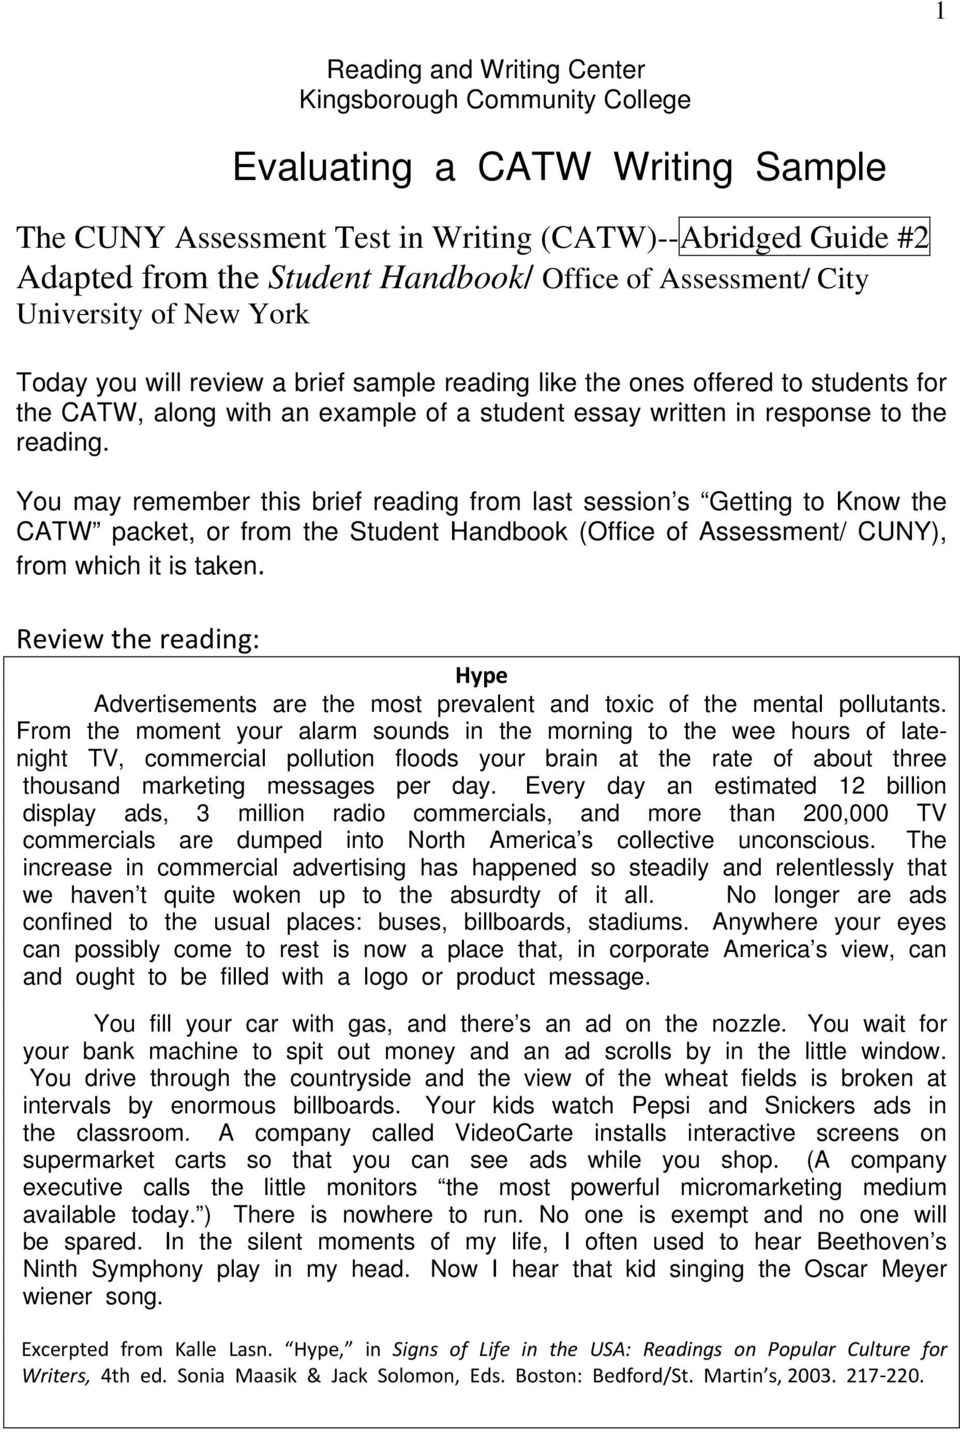 Evaluating a catw writing sample pdf